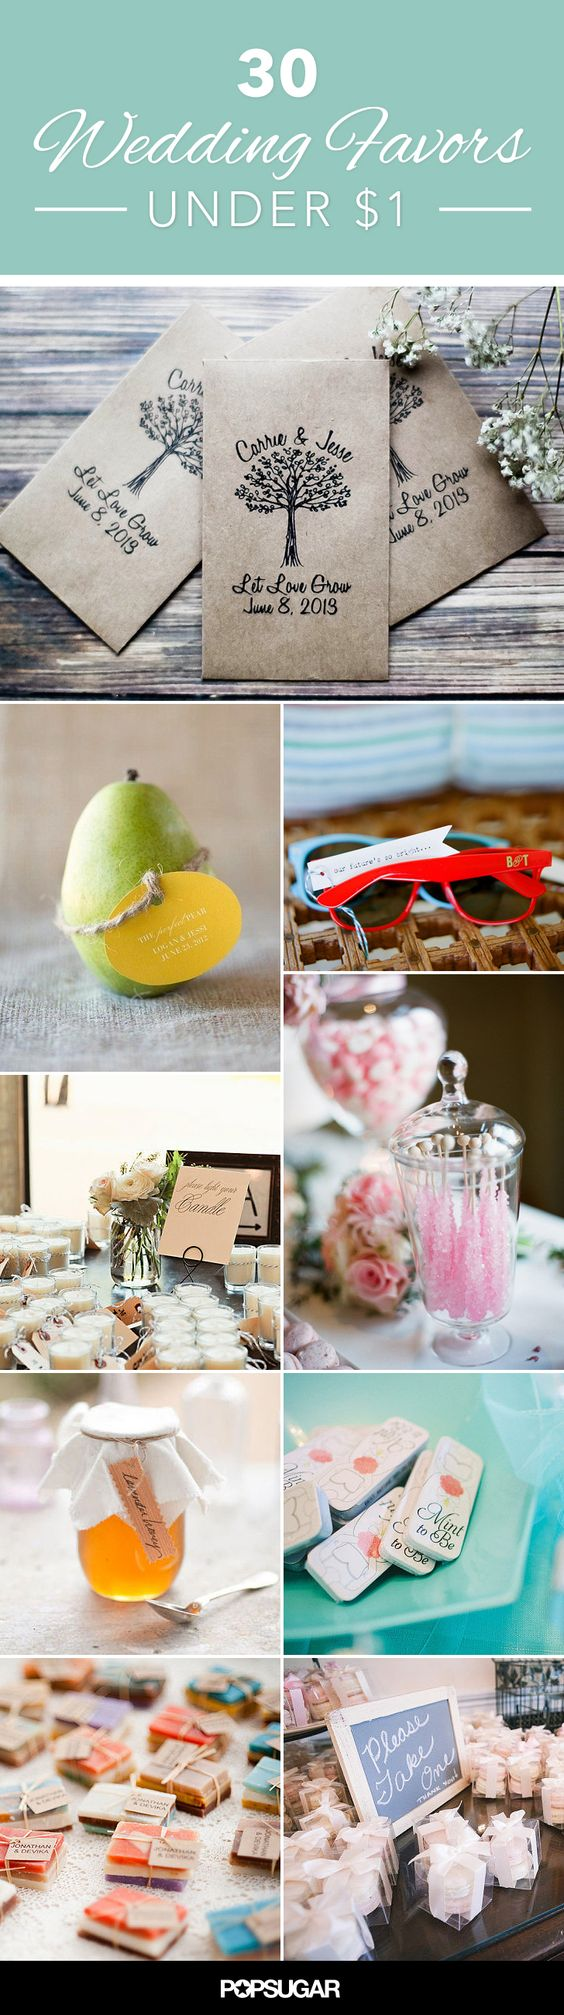 30 Wedding Favors That can Cost Under $1- I like the seed envelopes and lavender sachets!